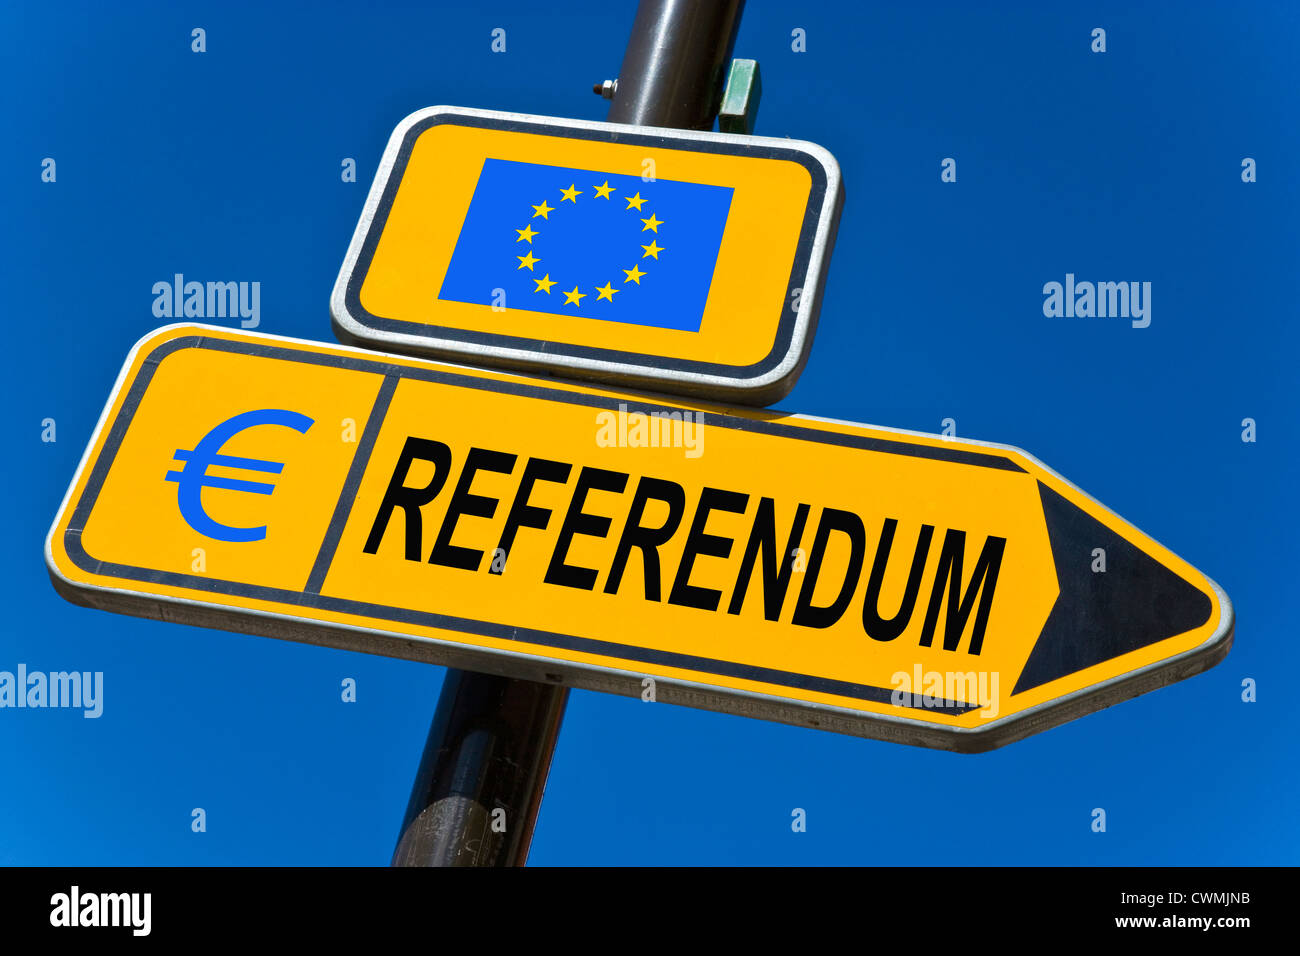 Referendum - European Union and sign of EURO currency - Stock Image